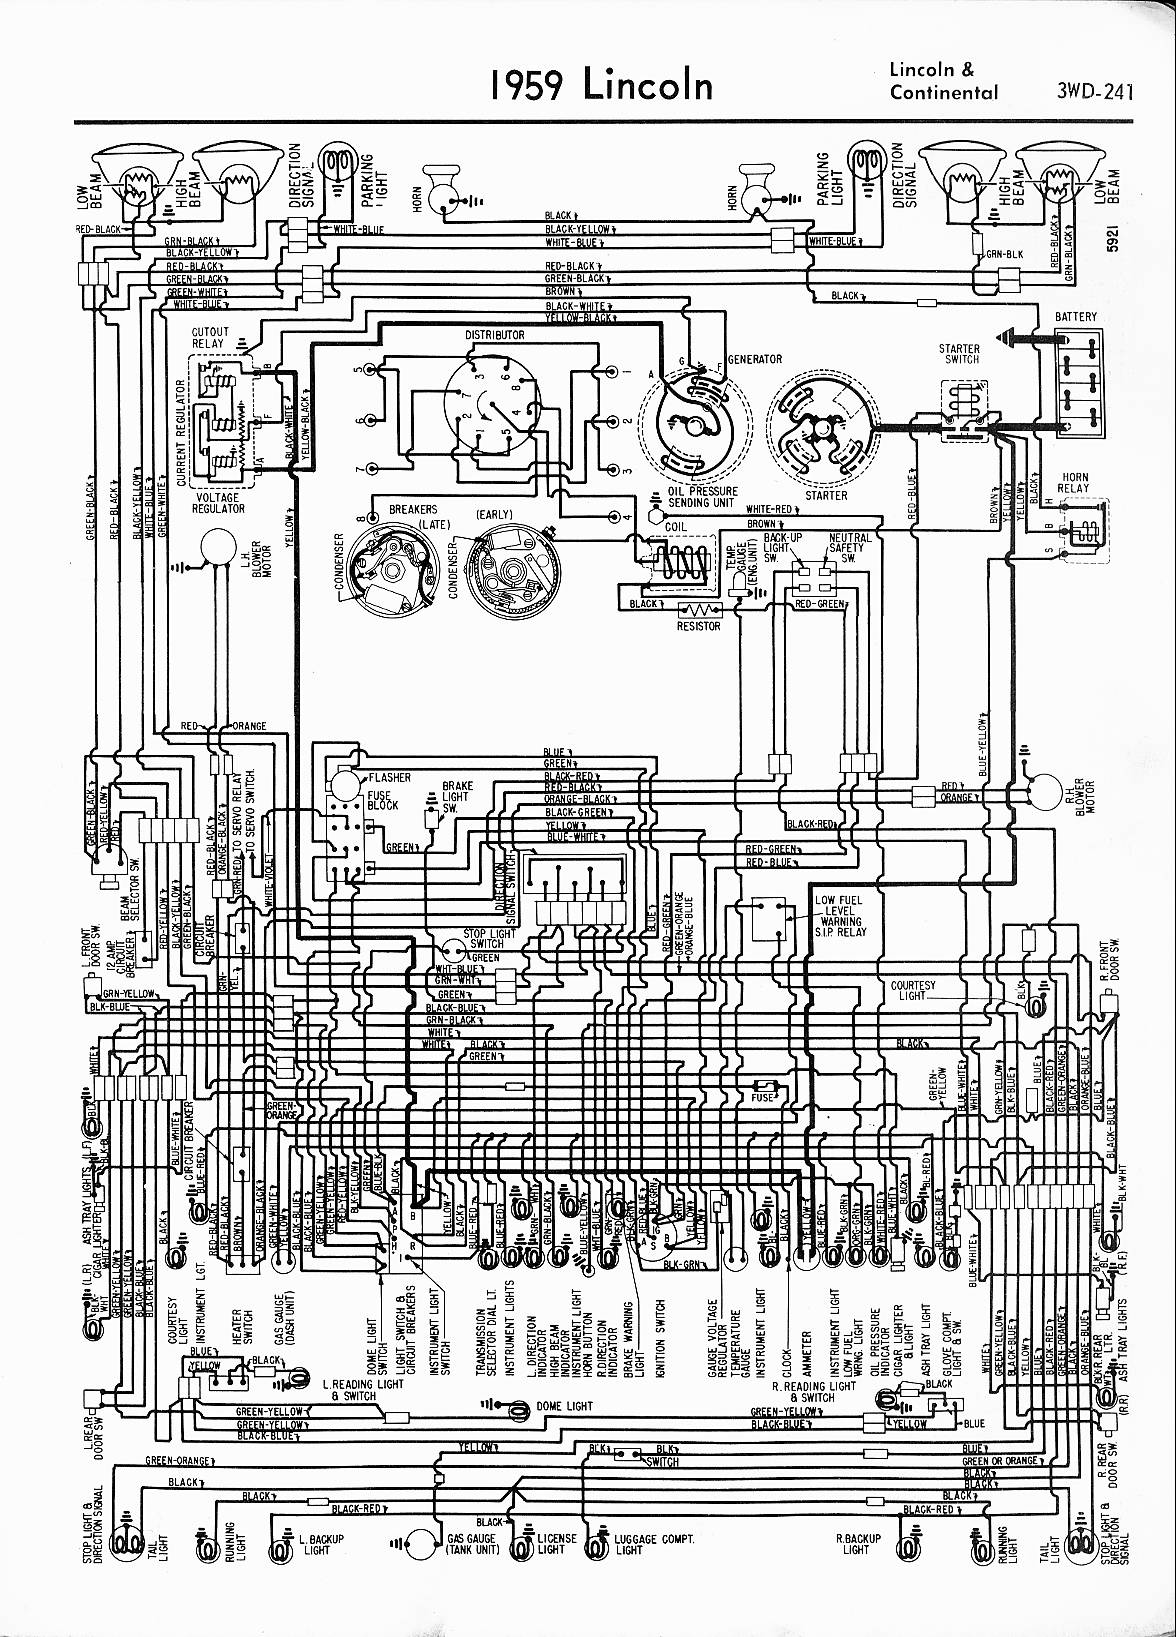 1971 Lincoln Wiring Diagram Diagrams Chevy Truck Harness 1957 1965 Cutlass